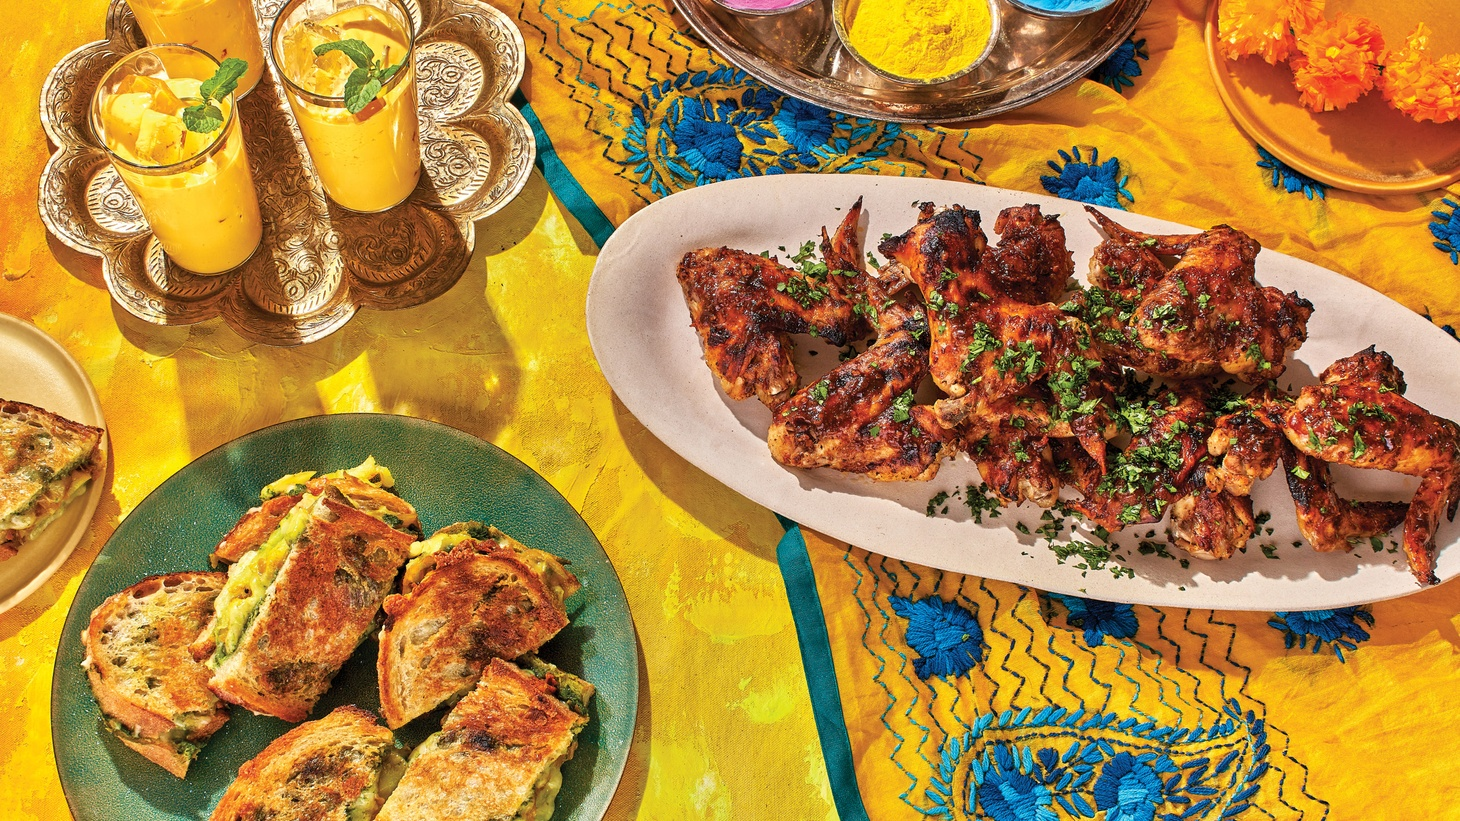 Sweet and Salty Mango Lassi, Burnt Masala Wings, and Bombay Sandwiches — Bon Appétit executive editor Sonia Chopra shares memories of Holi with recipes to celebrate at home.